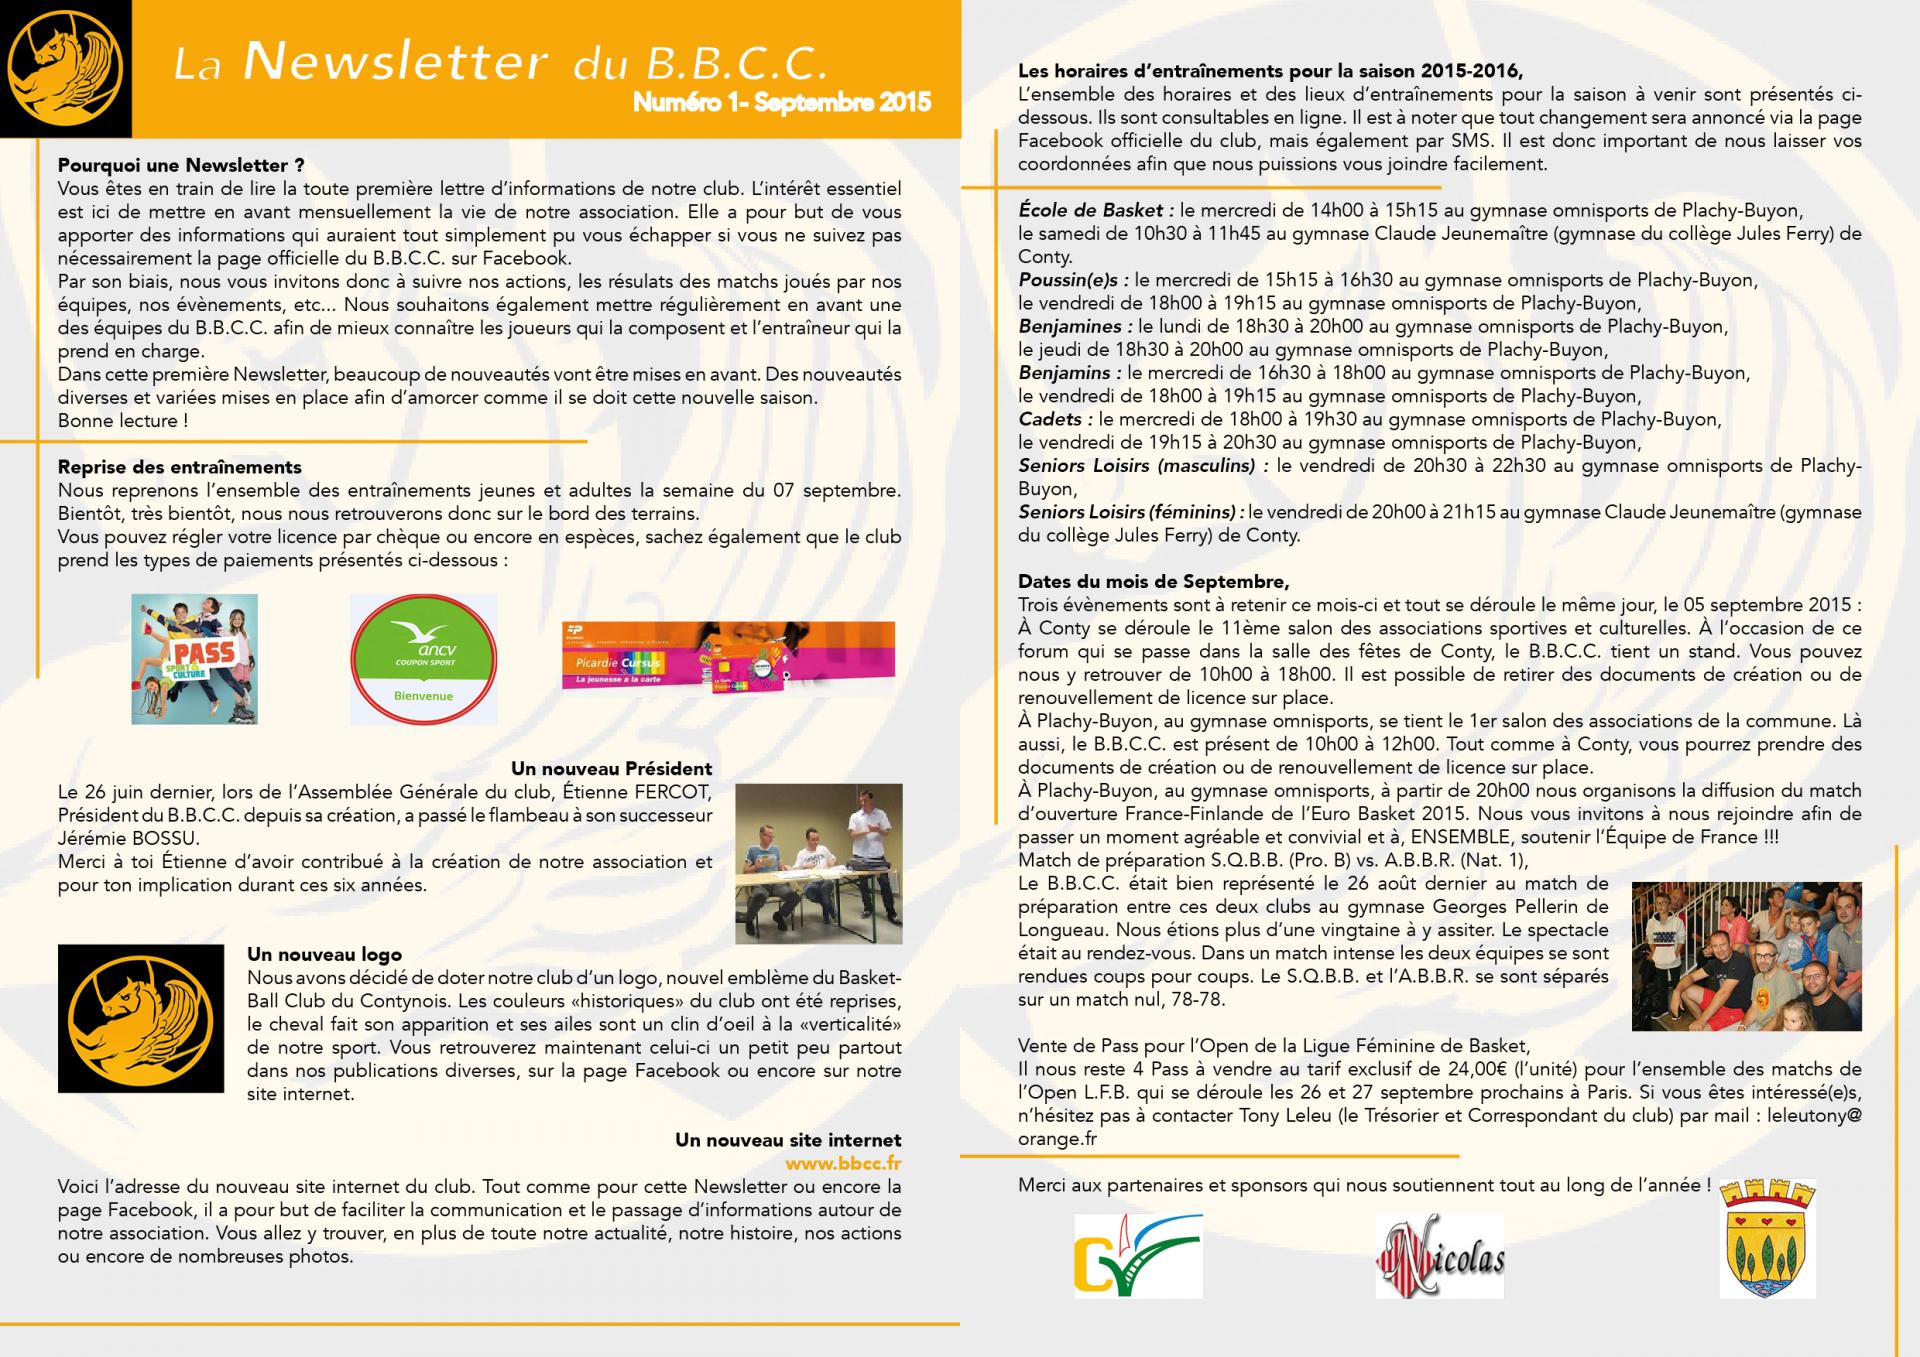 Newsletter #1 - septembre 2015